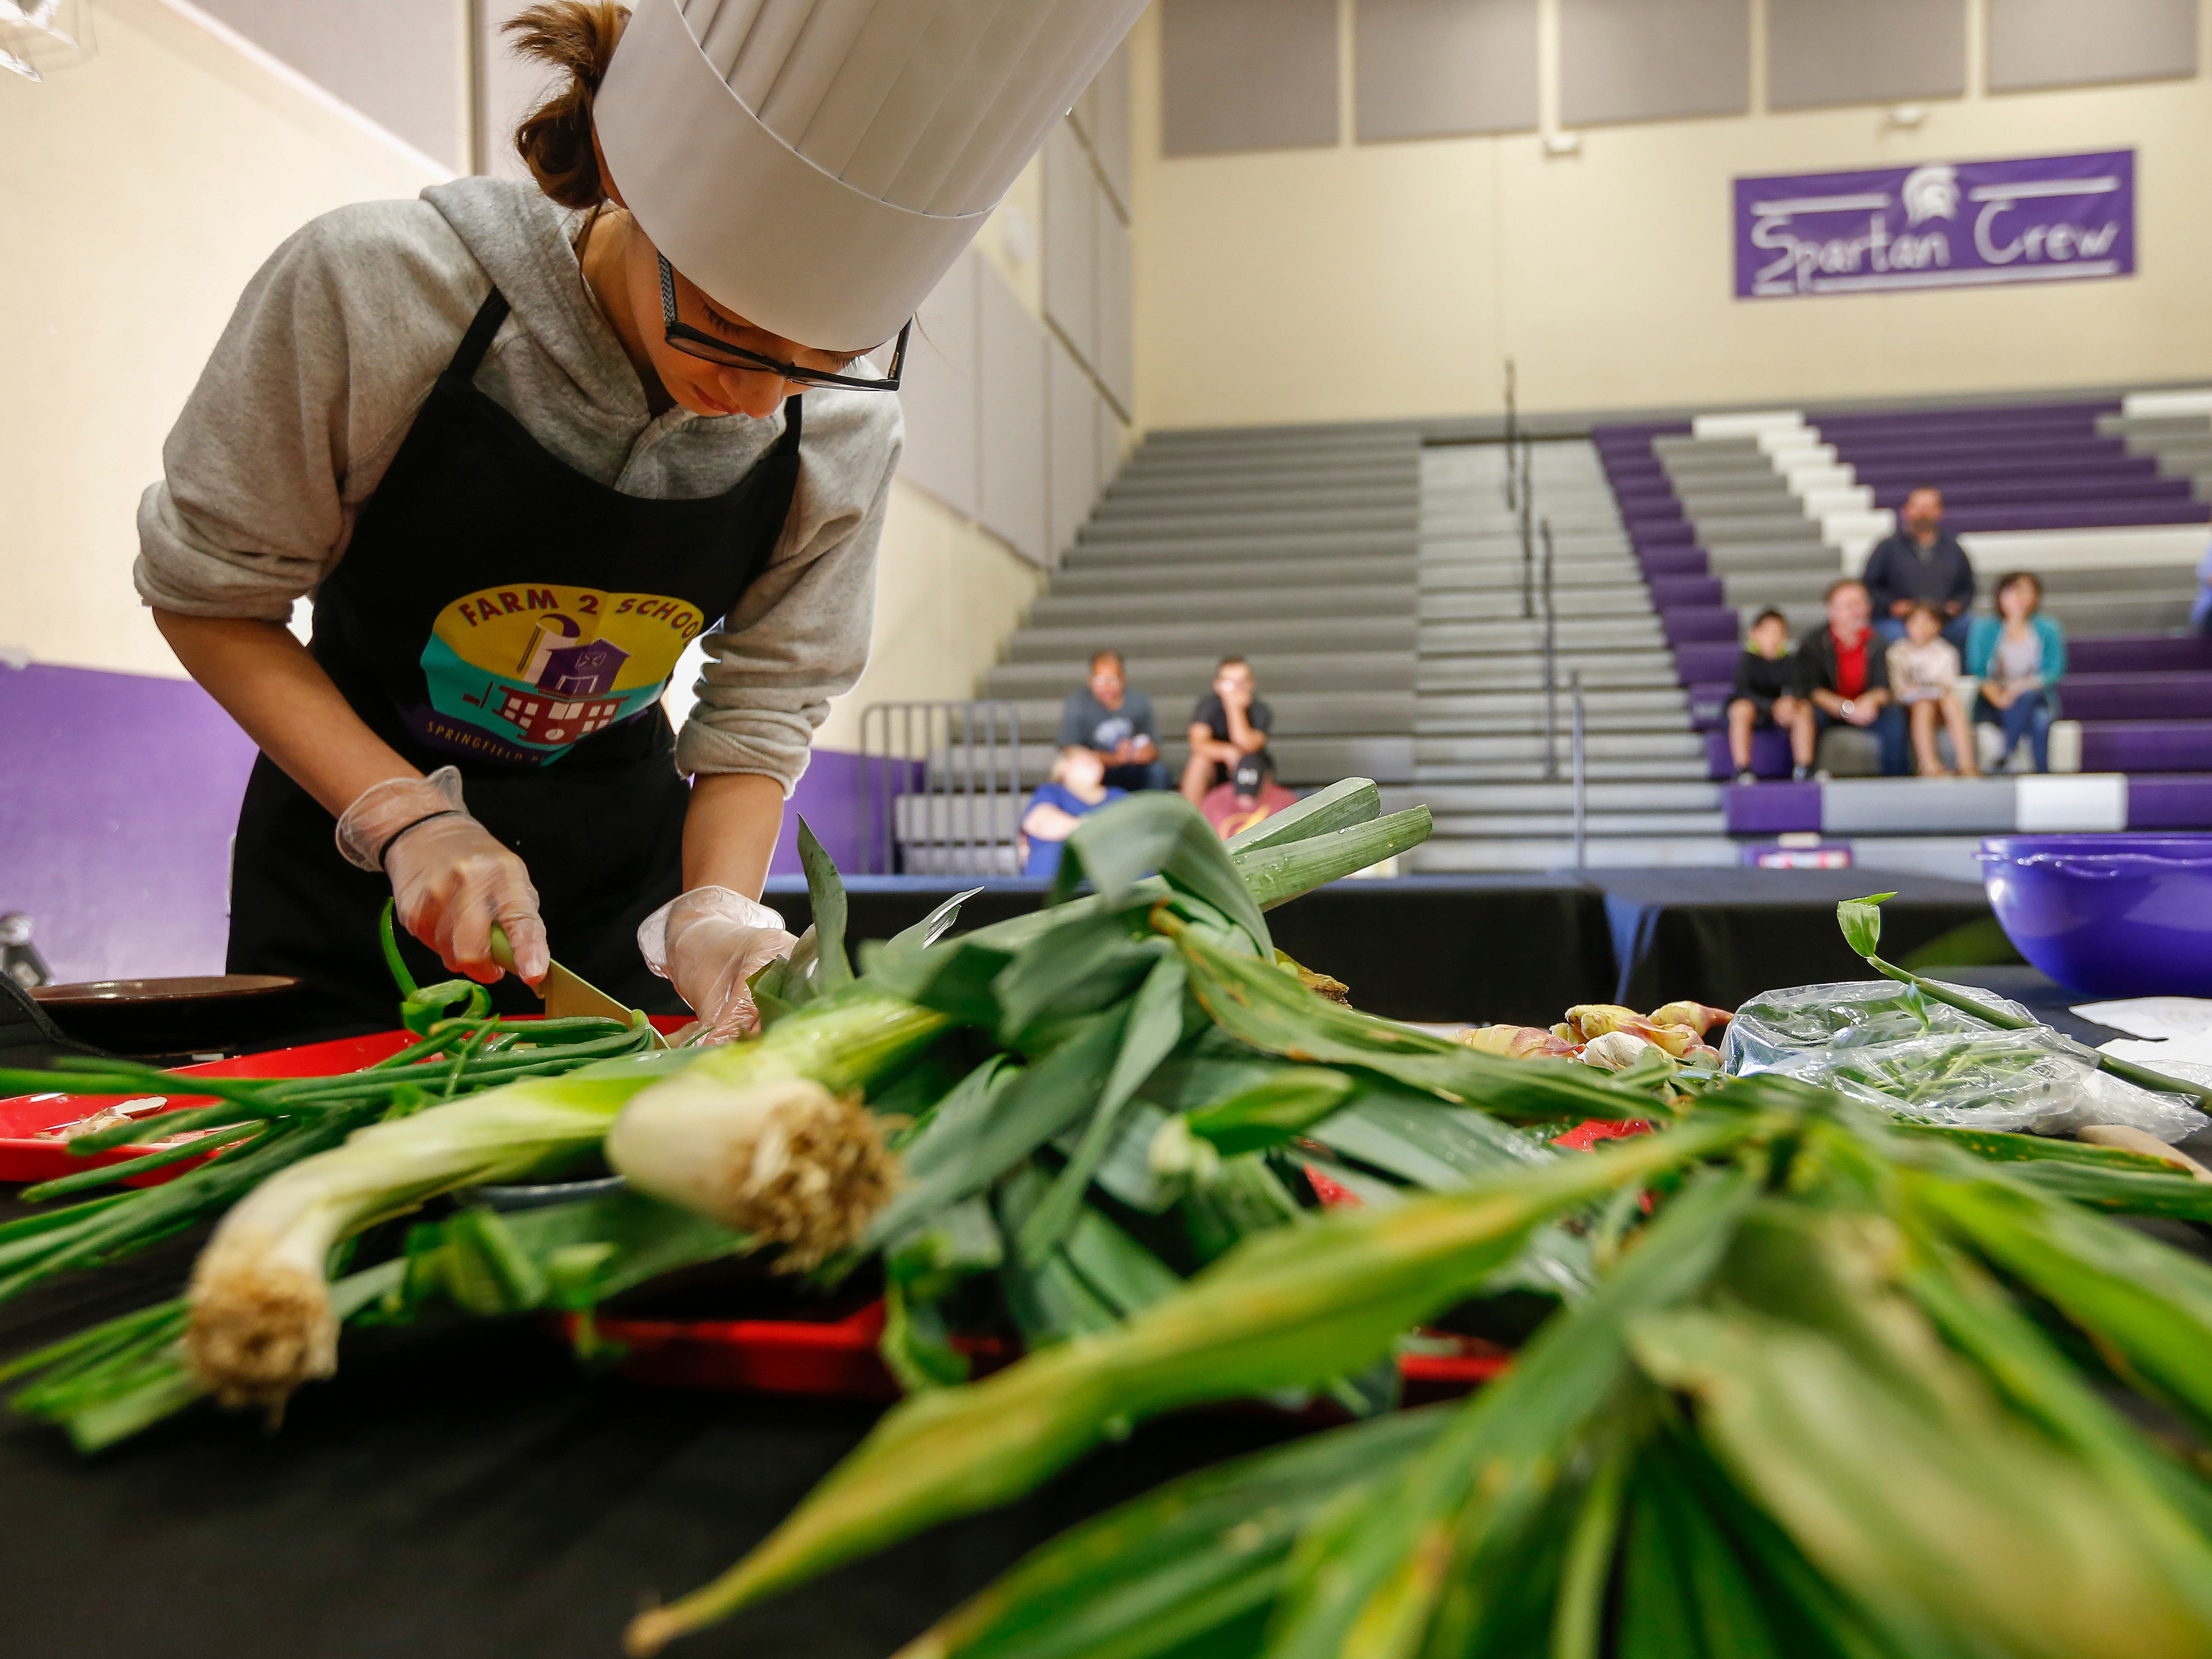 Danielle McCorison, a student at Central Scholars, chops green onions during the third annual Junior Chef Competition at Hickory Hills Middle School on Saturday, Sept. 29, 2018.